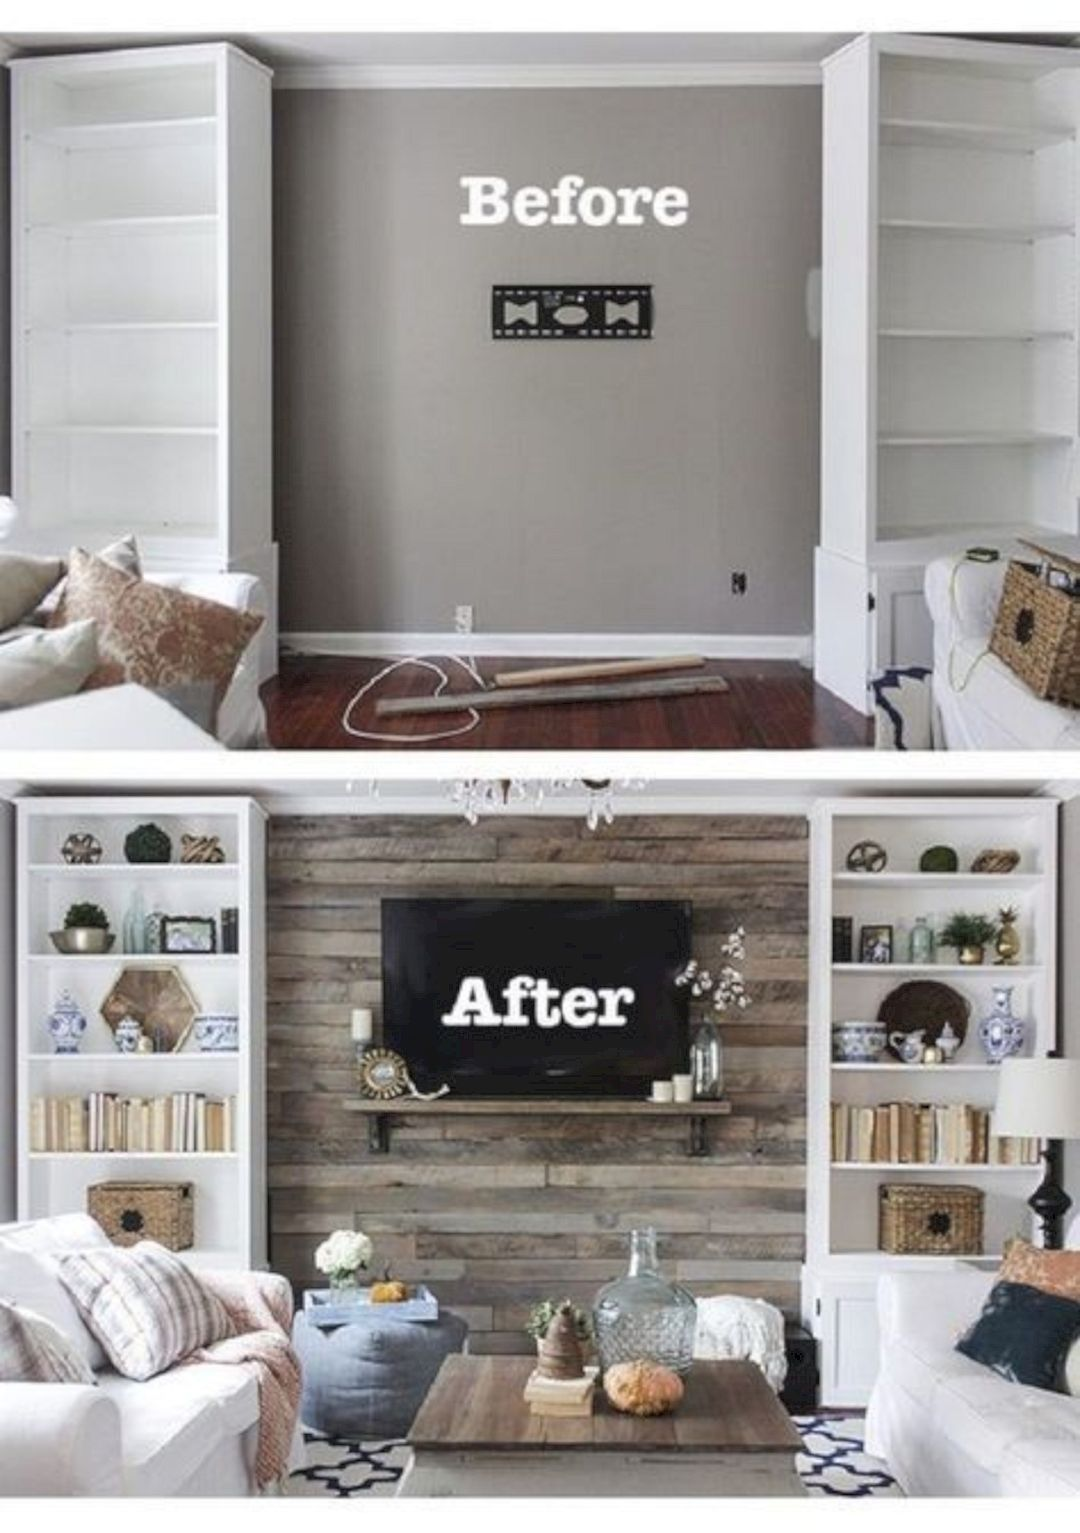 Genial 15 Awesome Wall Decorating Ideas To Ditch Your Bare Wall Https://www.